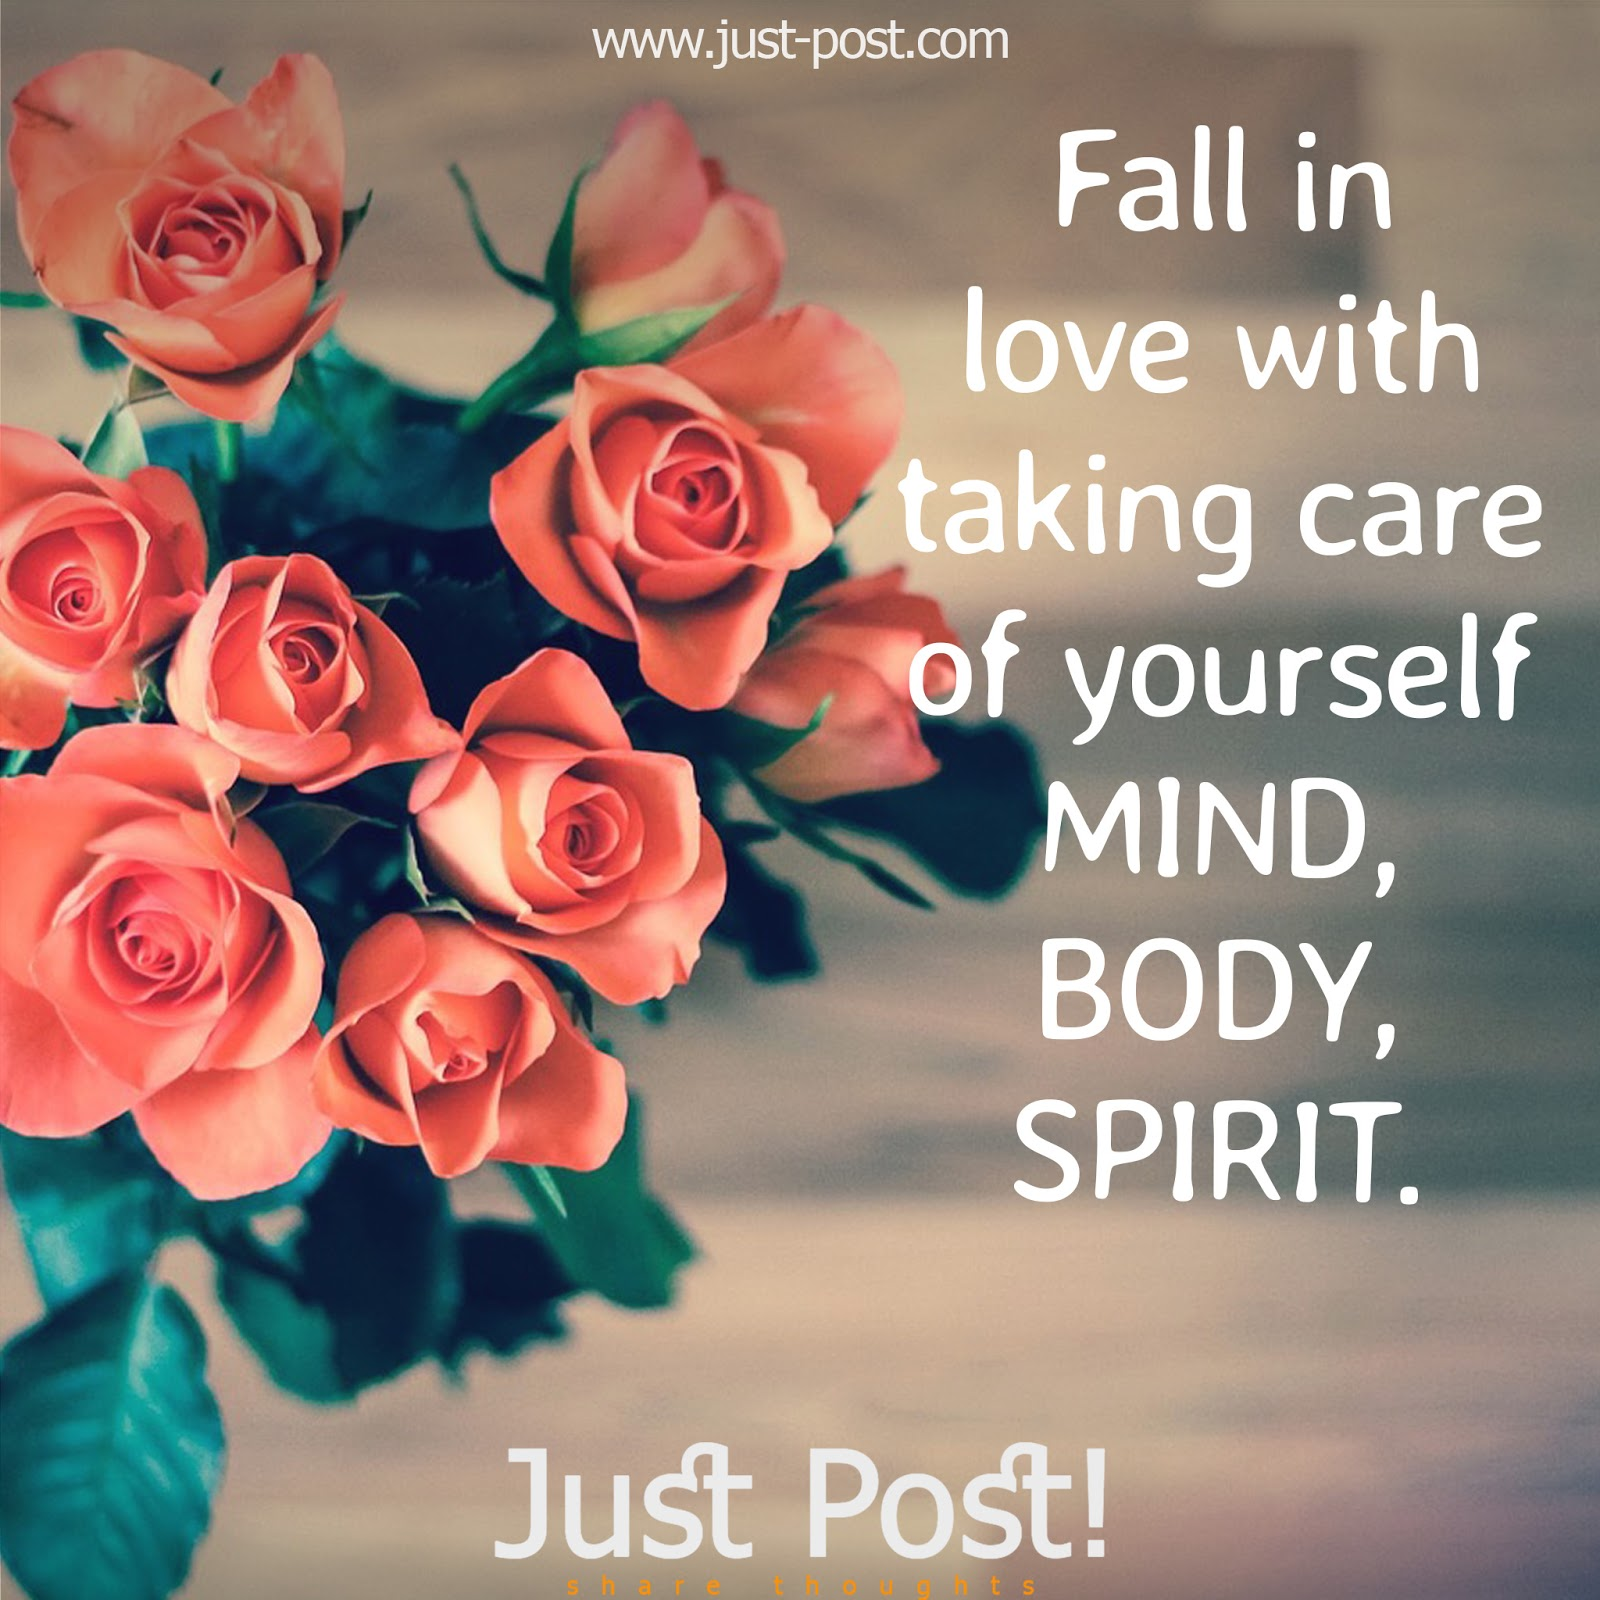 Life Changing Quotes About Love 14 Lifechanging Inspirational Quotes  Justpost  Share Thoughts